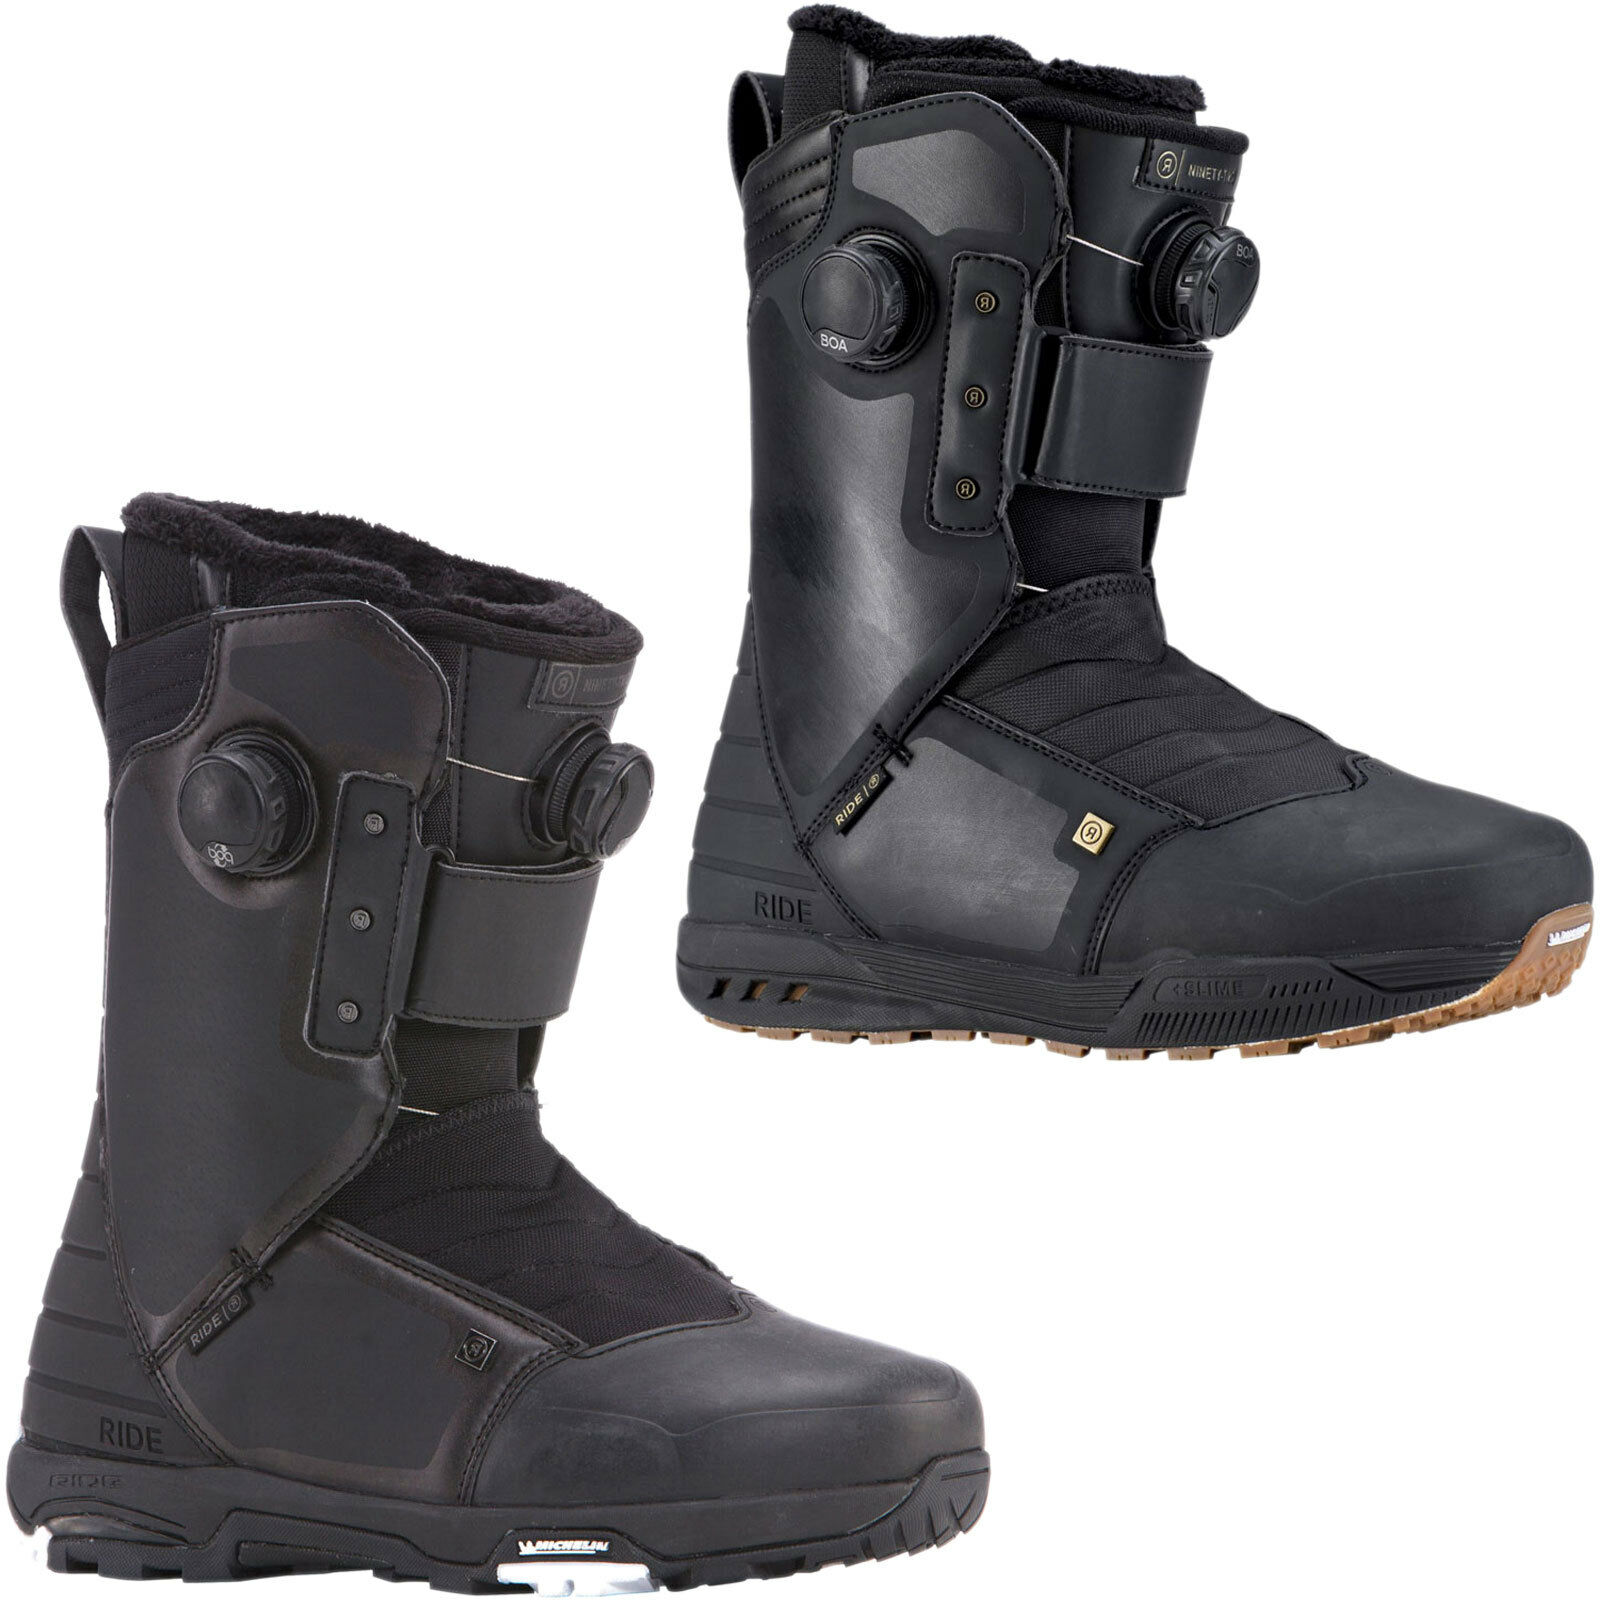 Ride 92 Ninety Two Boa Men's Snowboard Boots shoes Soft 2018-2019